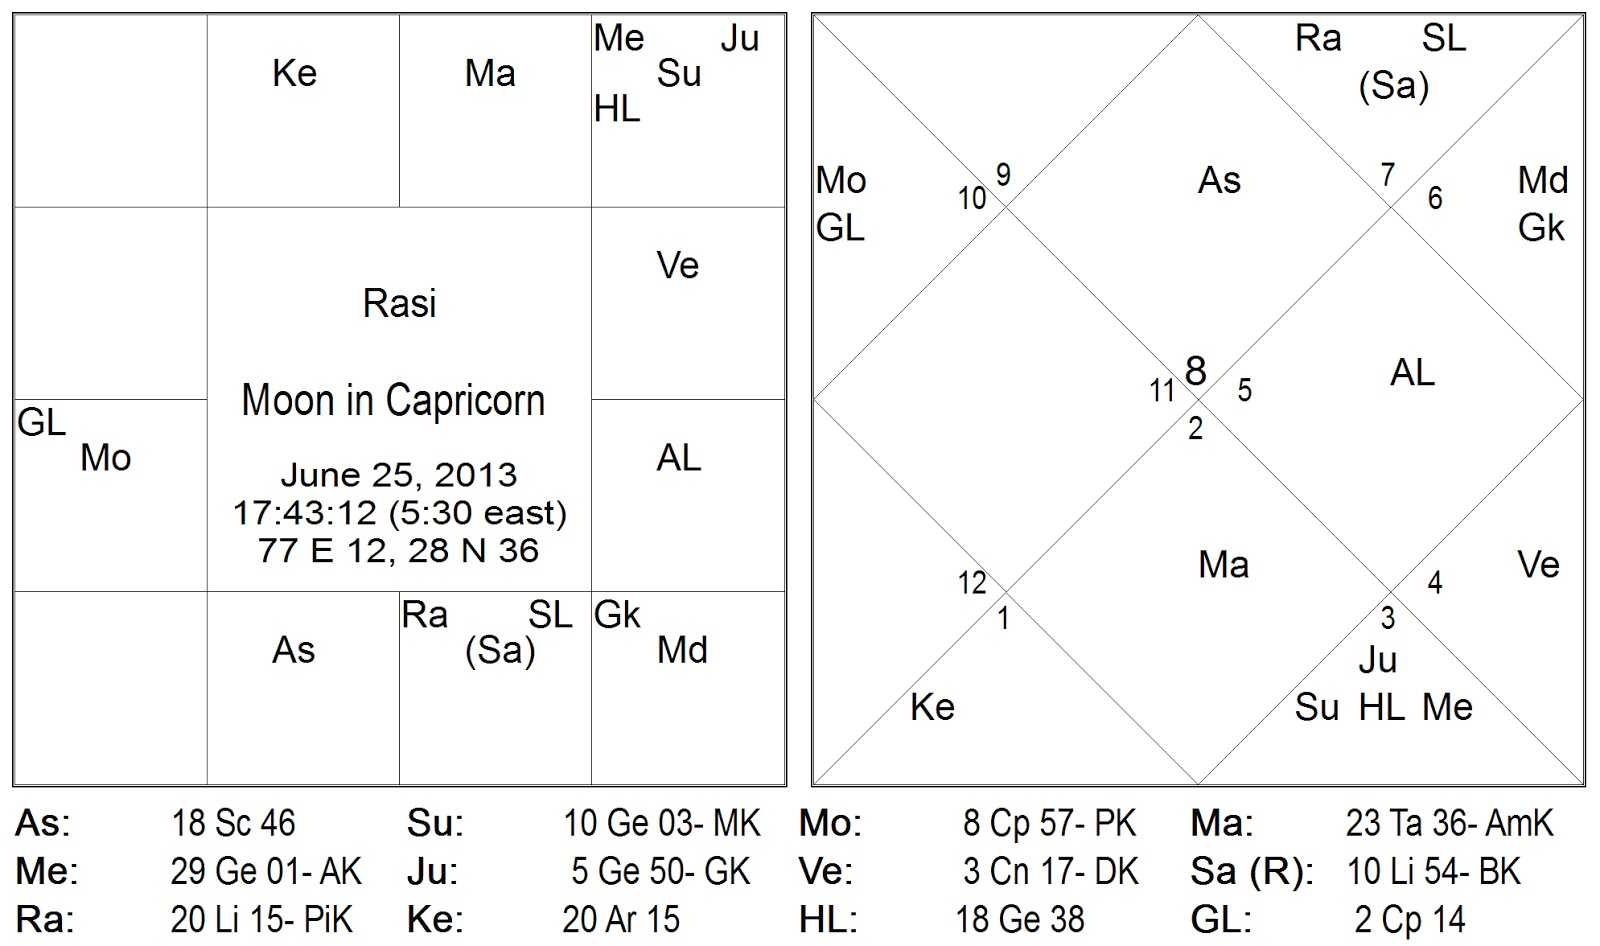 Vedic astrology consultancy research february 2013 something about your karma moon in capricorn cadra in makara ri chandra in makara rashi during 25th to 27th of june 2013 geenschuldenfo Images